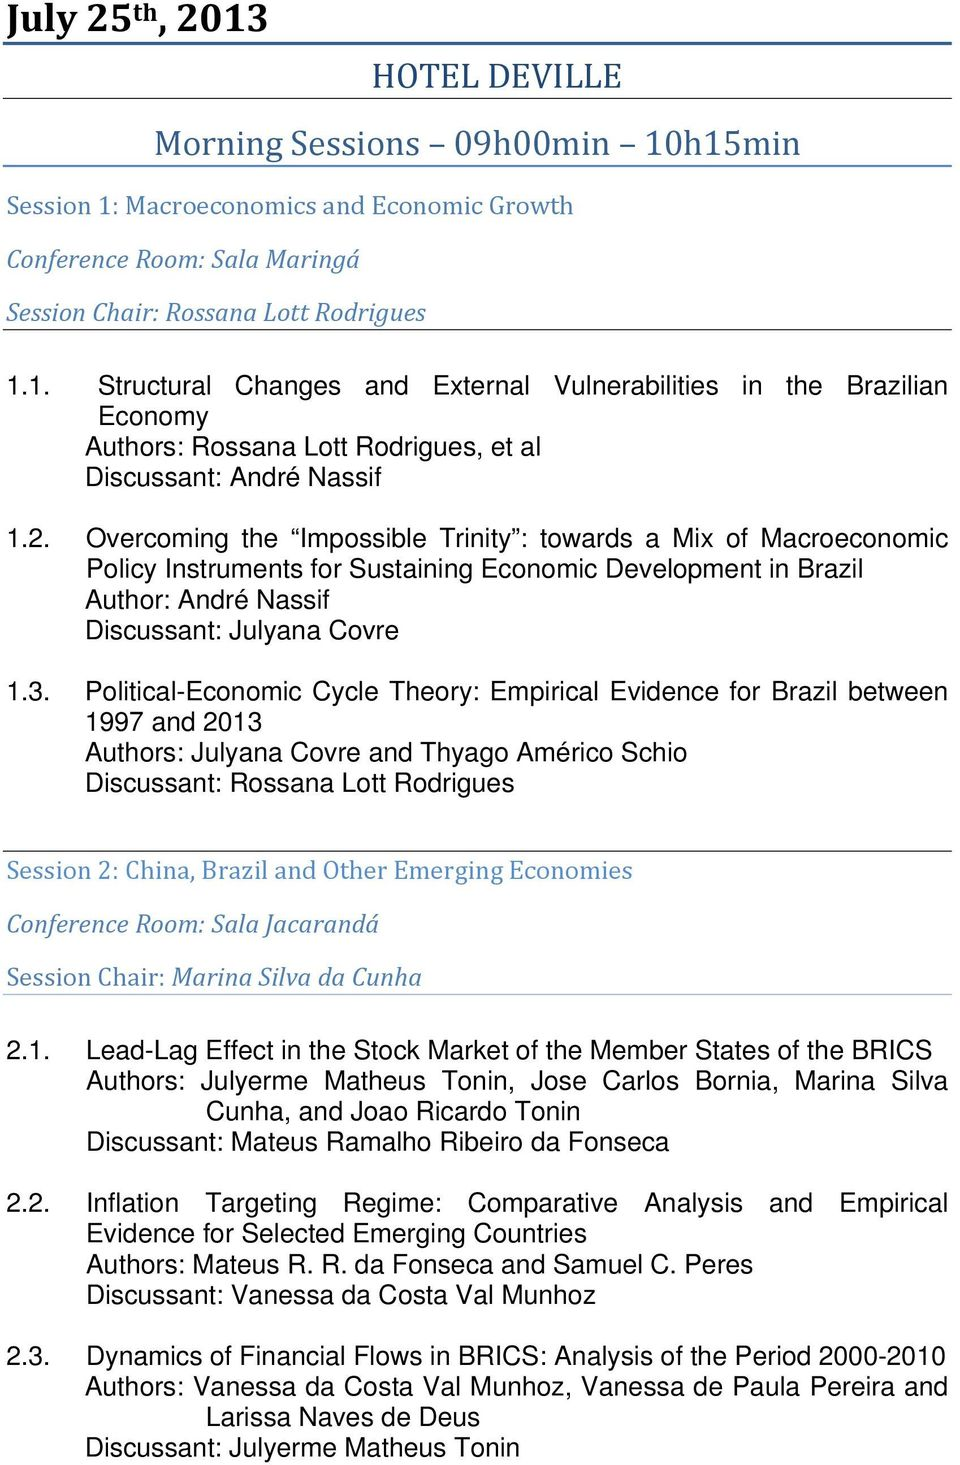 Political-Economic Cycle Theory: Empirical Evidence for Brazil between 1997 and 2013 Authors: Julyana Covre and Thyago Américo Schio Discussant: Rossana Lott Rodrigues Session 2: China, Brazil and